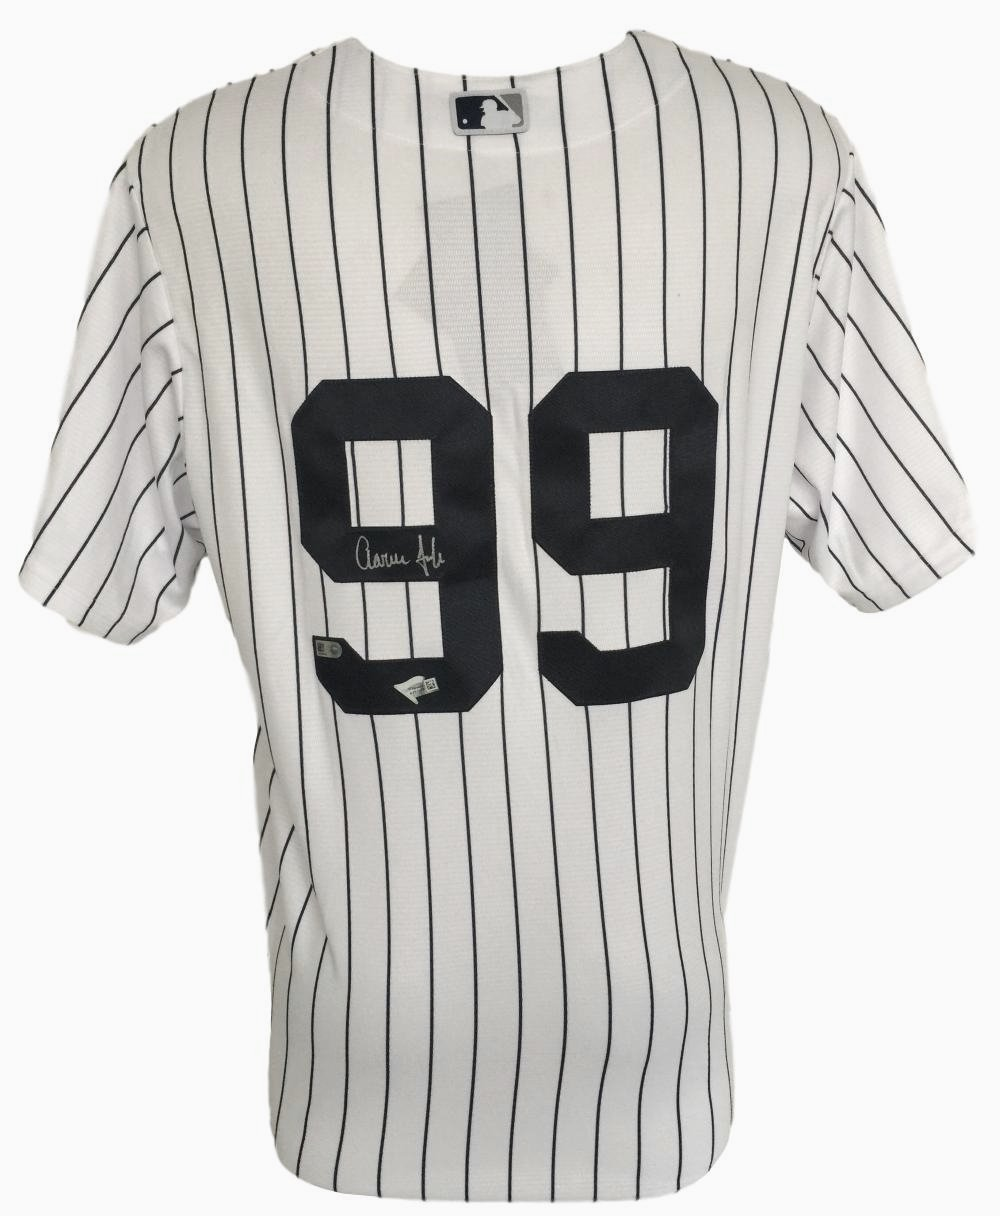 huge selection of 00233 1e8f2 Aaron Judge Signed New York Yankees Majestic Cool Base ...